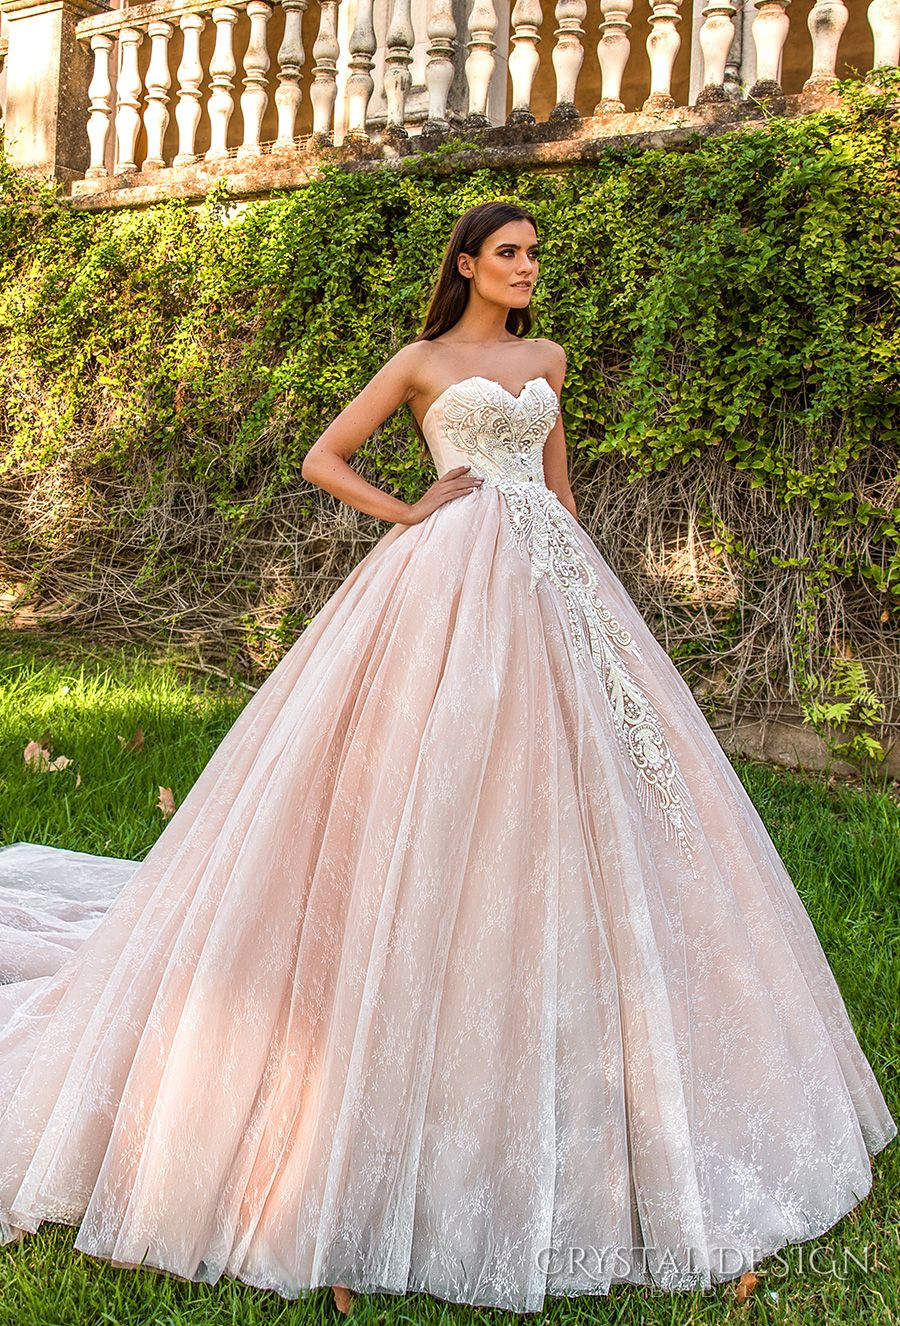 Beautiful Wedding Dresses From The 2017 Crystal Design Collection Sevilla Bridal Campaign Wedding Inspirasi Beautiful Wedding Dresses Wedding Dresses Strapless Pink Wedding Dresses [ 1326 x 900 Pixel ]